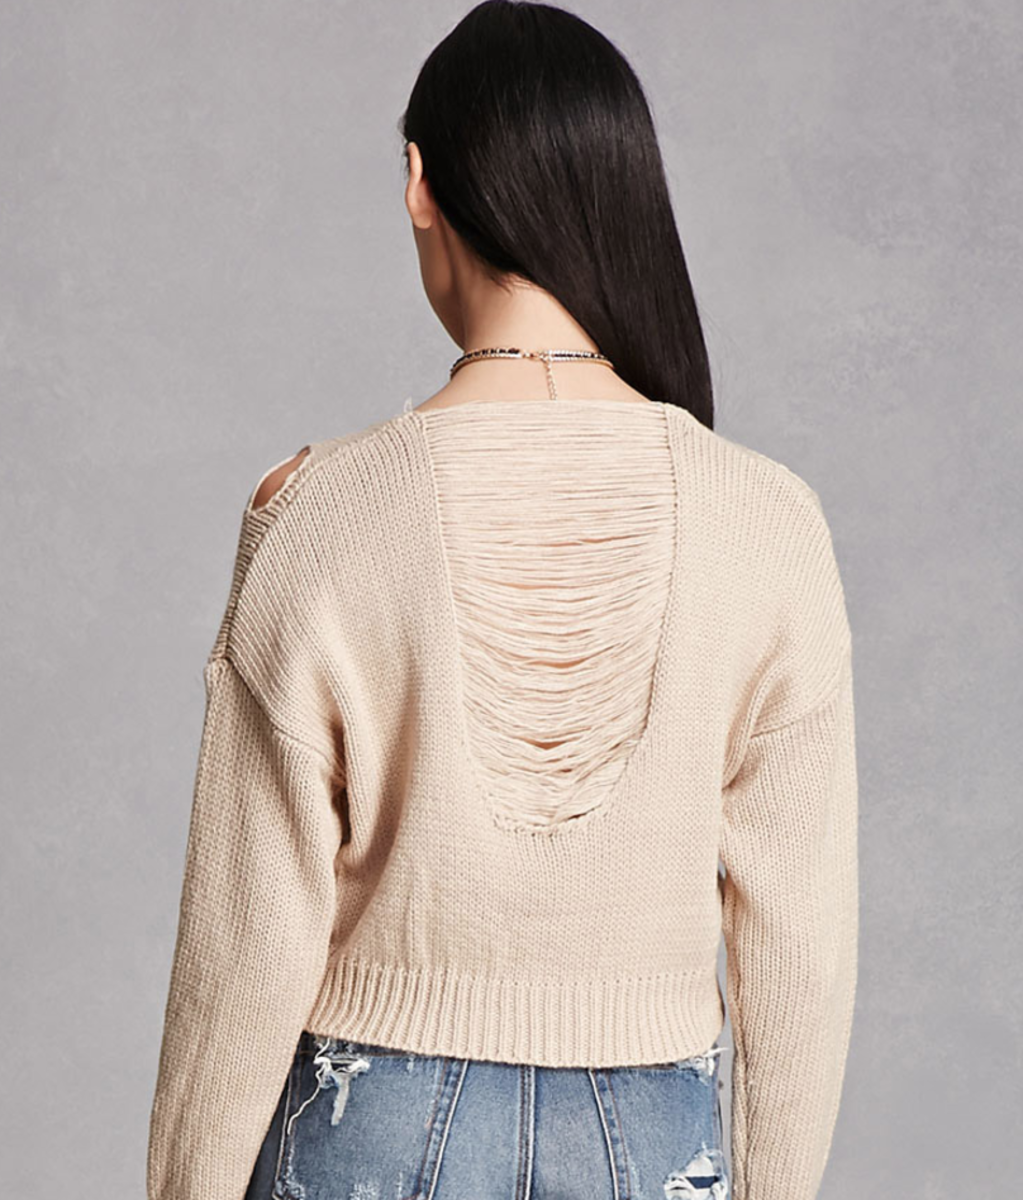 Shop the Item: Ladder Dolman Sweater ($35) - I am obsessed with the details on this sweater